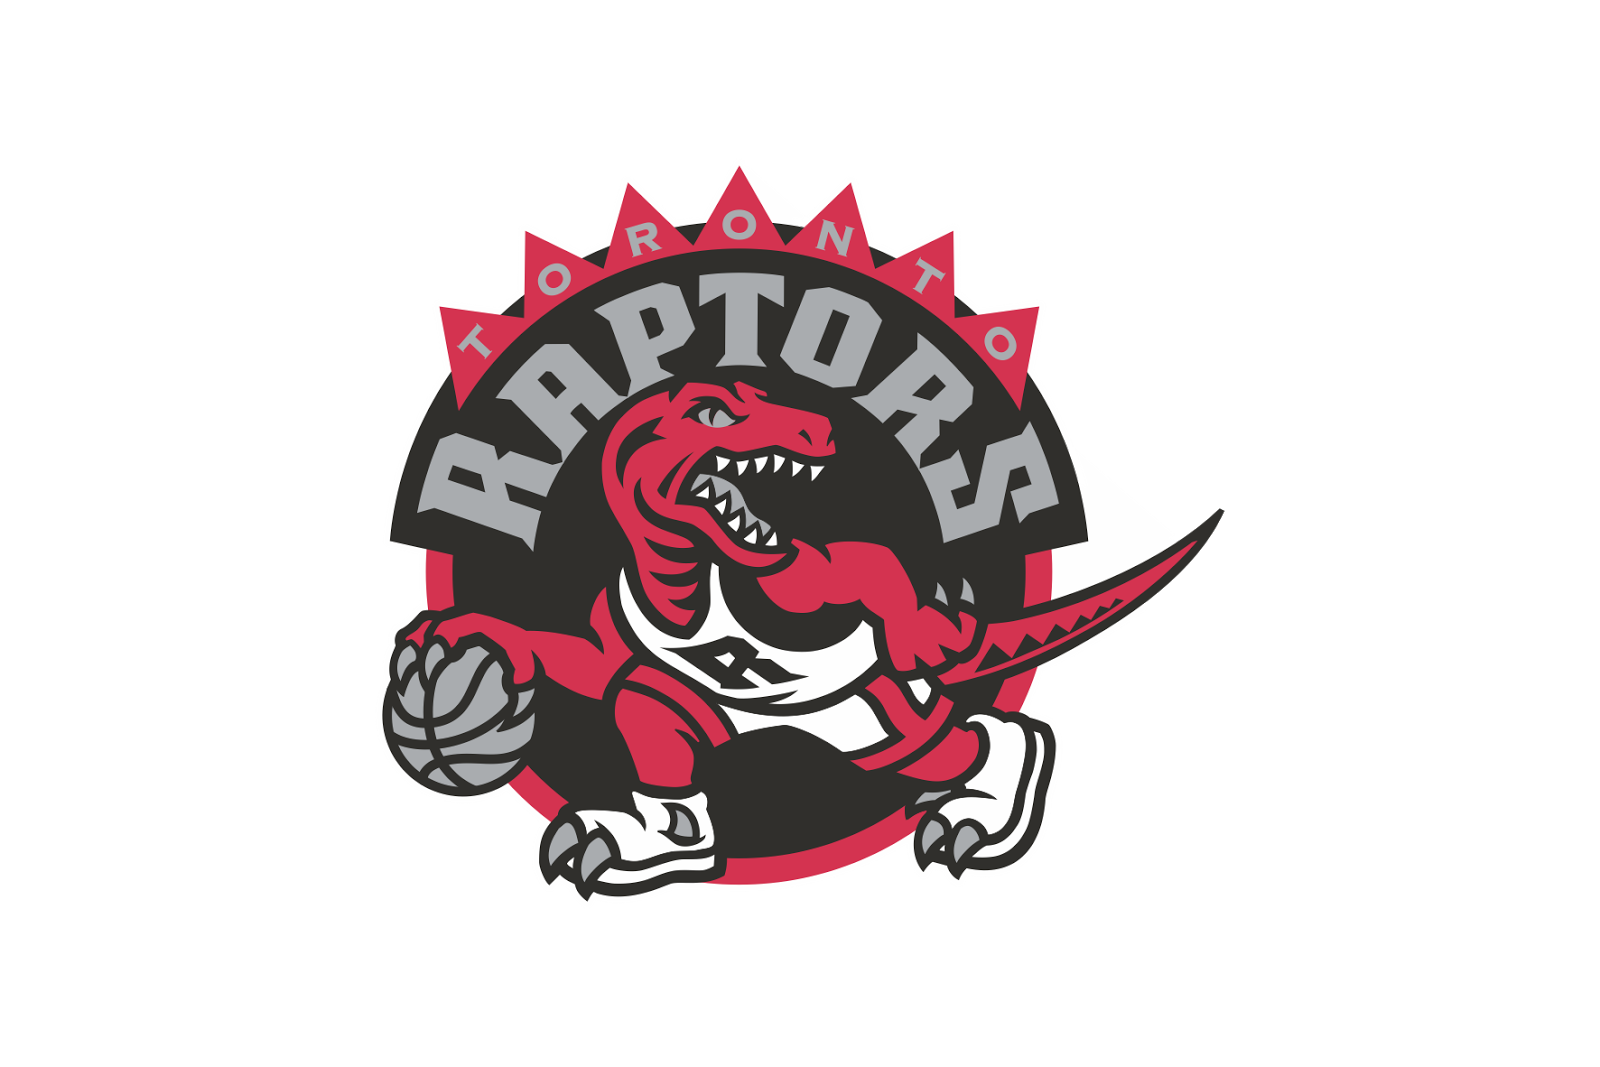 Jersey vector toronto raptors. Images of the basketball